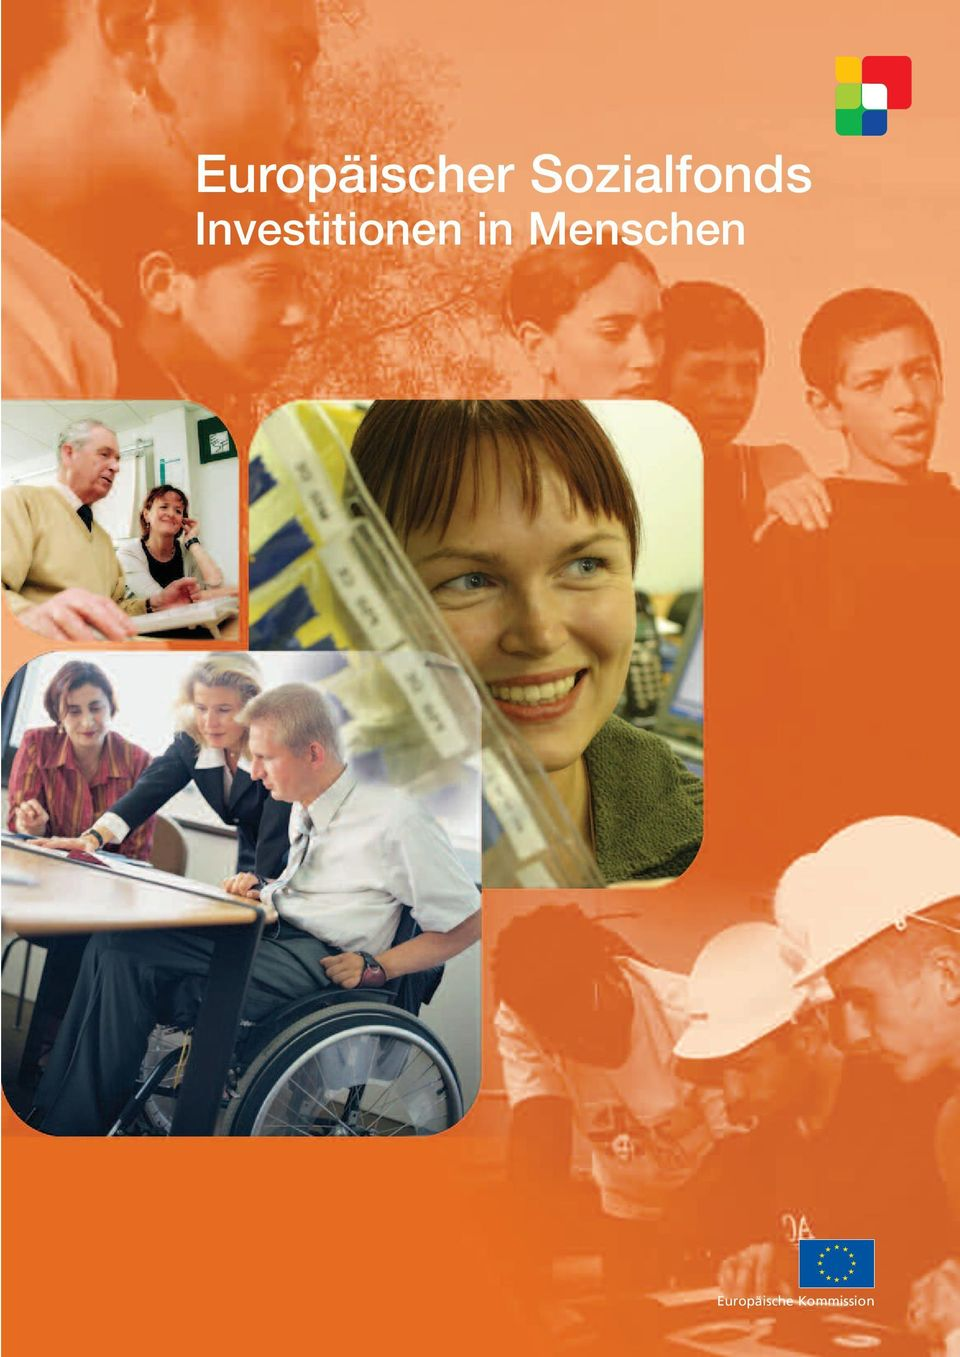 Investitionen in